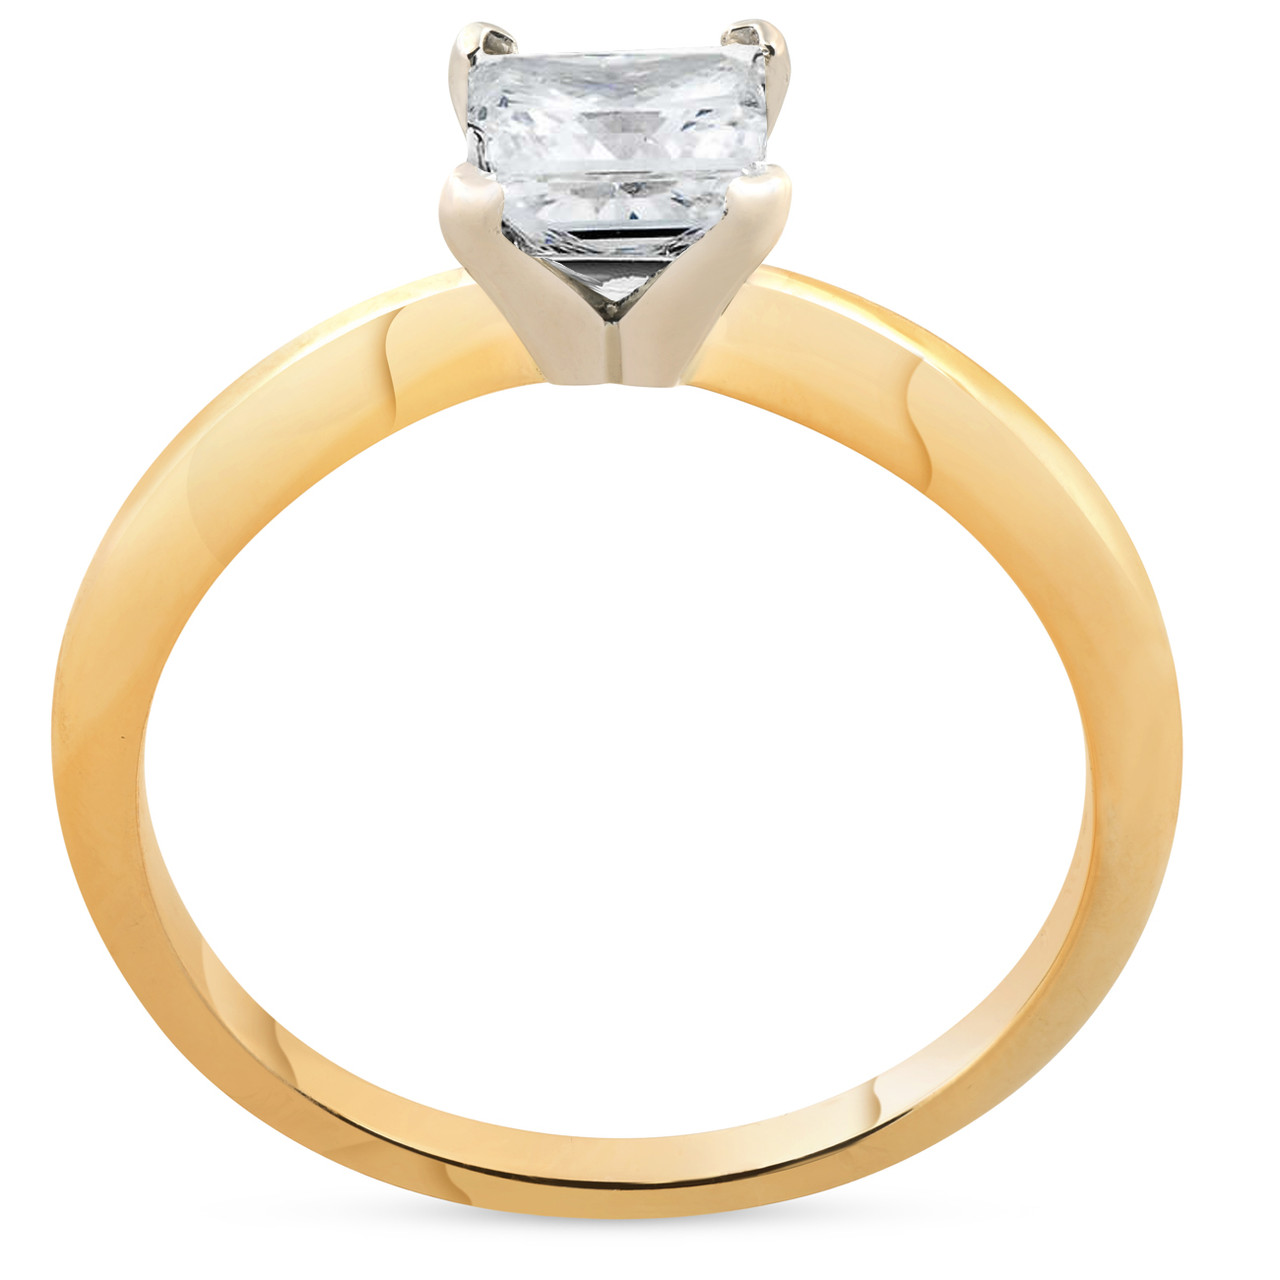 91e467748a457 1ct Princess Cut Diamond Solitaire 14k Yellow Gold Engagement Ring (H/I,  SI(1)-SI(2))